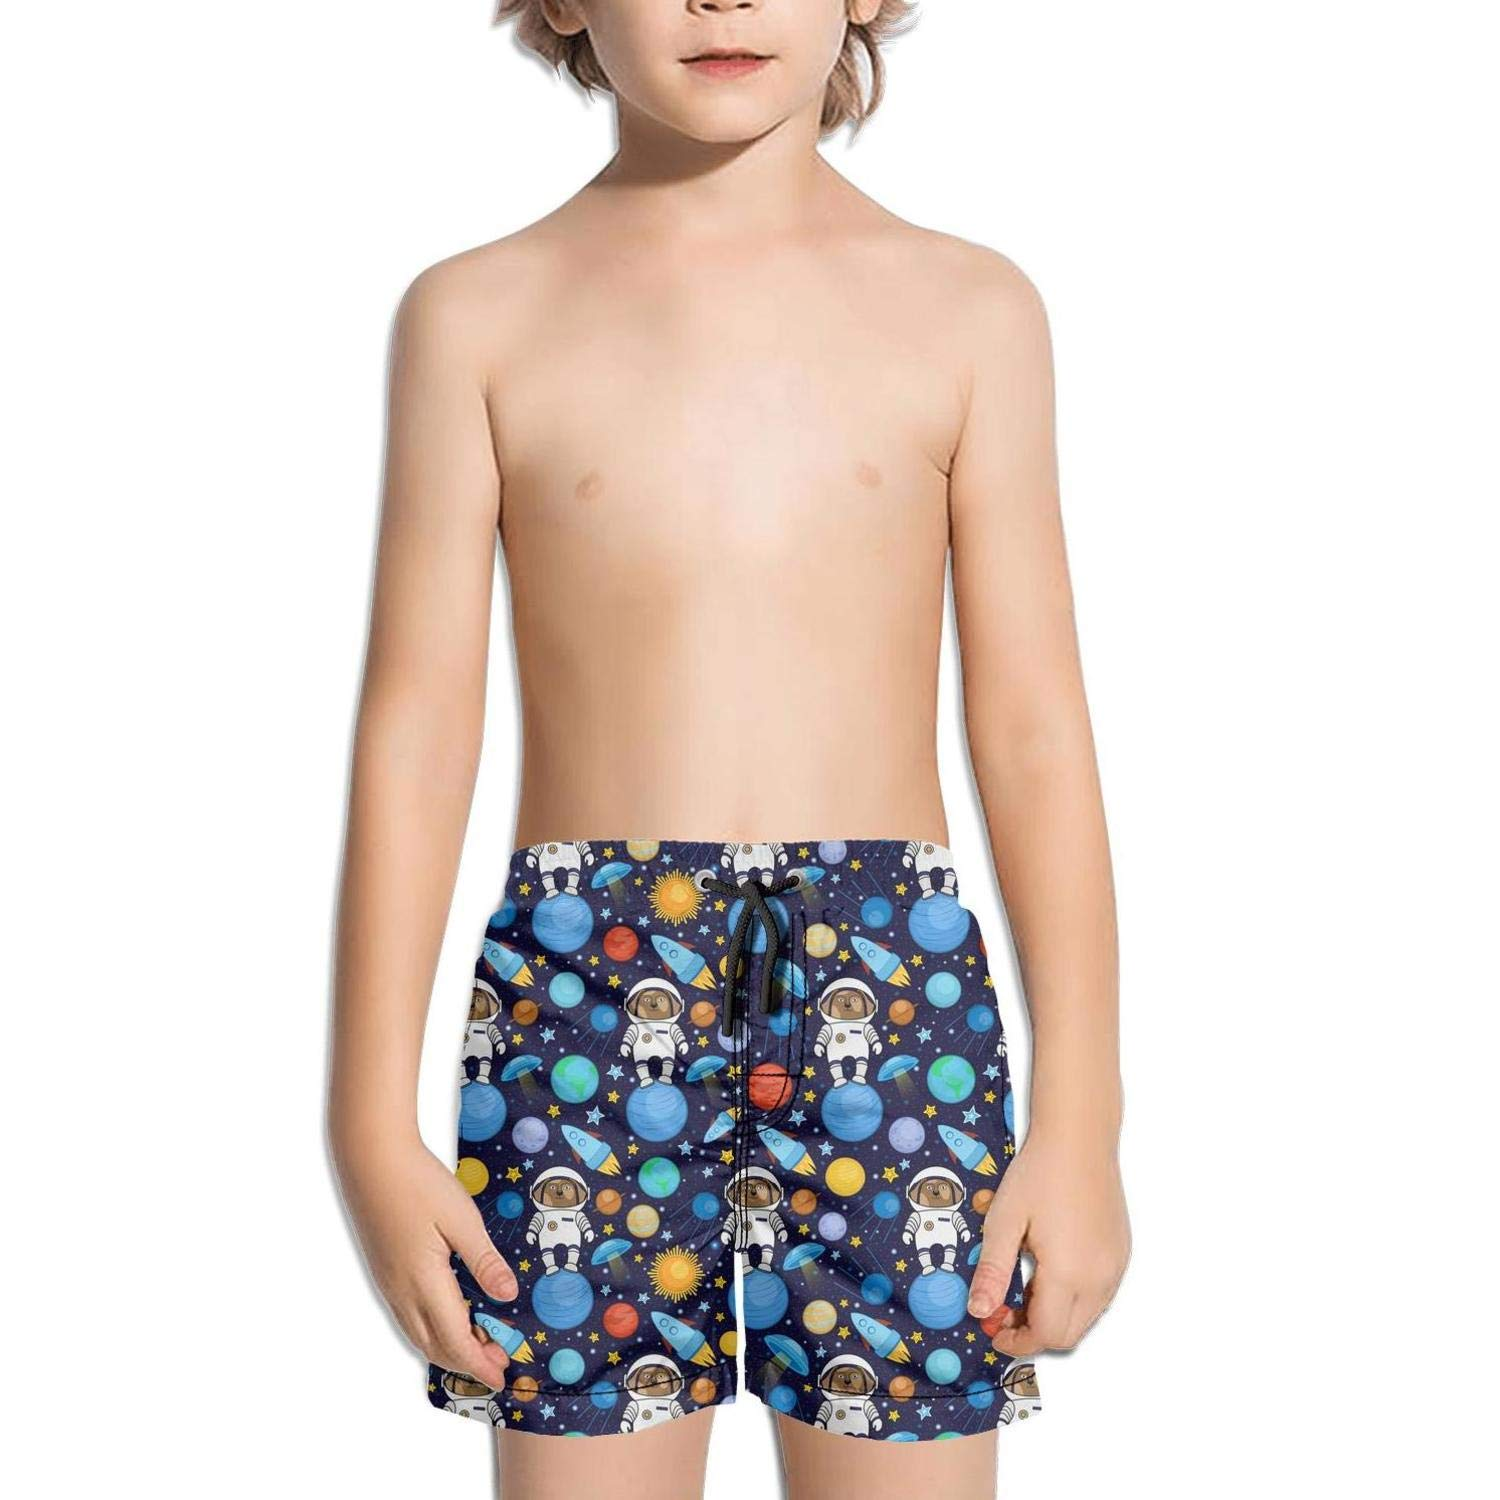 HailinED Boys Kids Blue Dog Astronaut Rockte Quick Dry Beach Swim Trunk Funny Swimsuit Beach Shorts with Drawstring